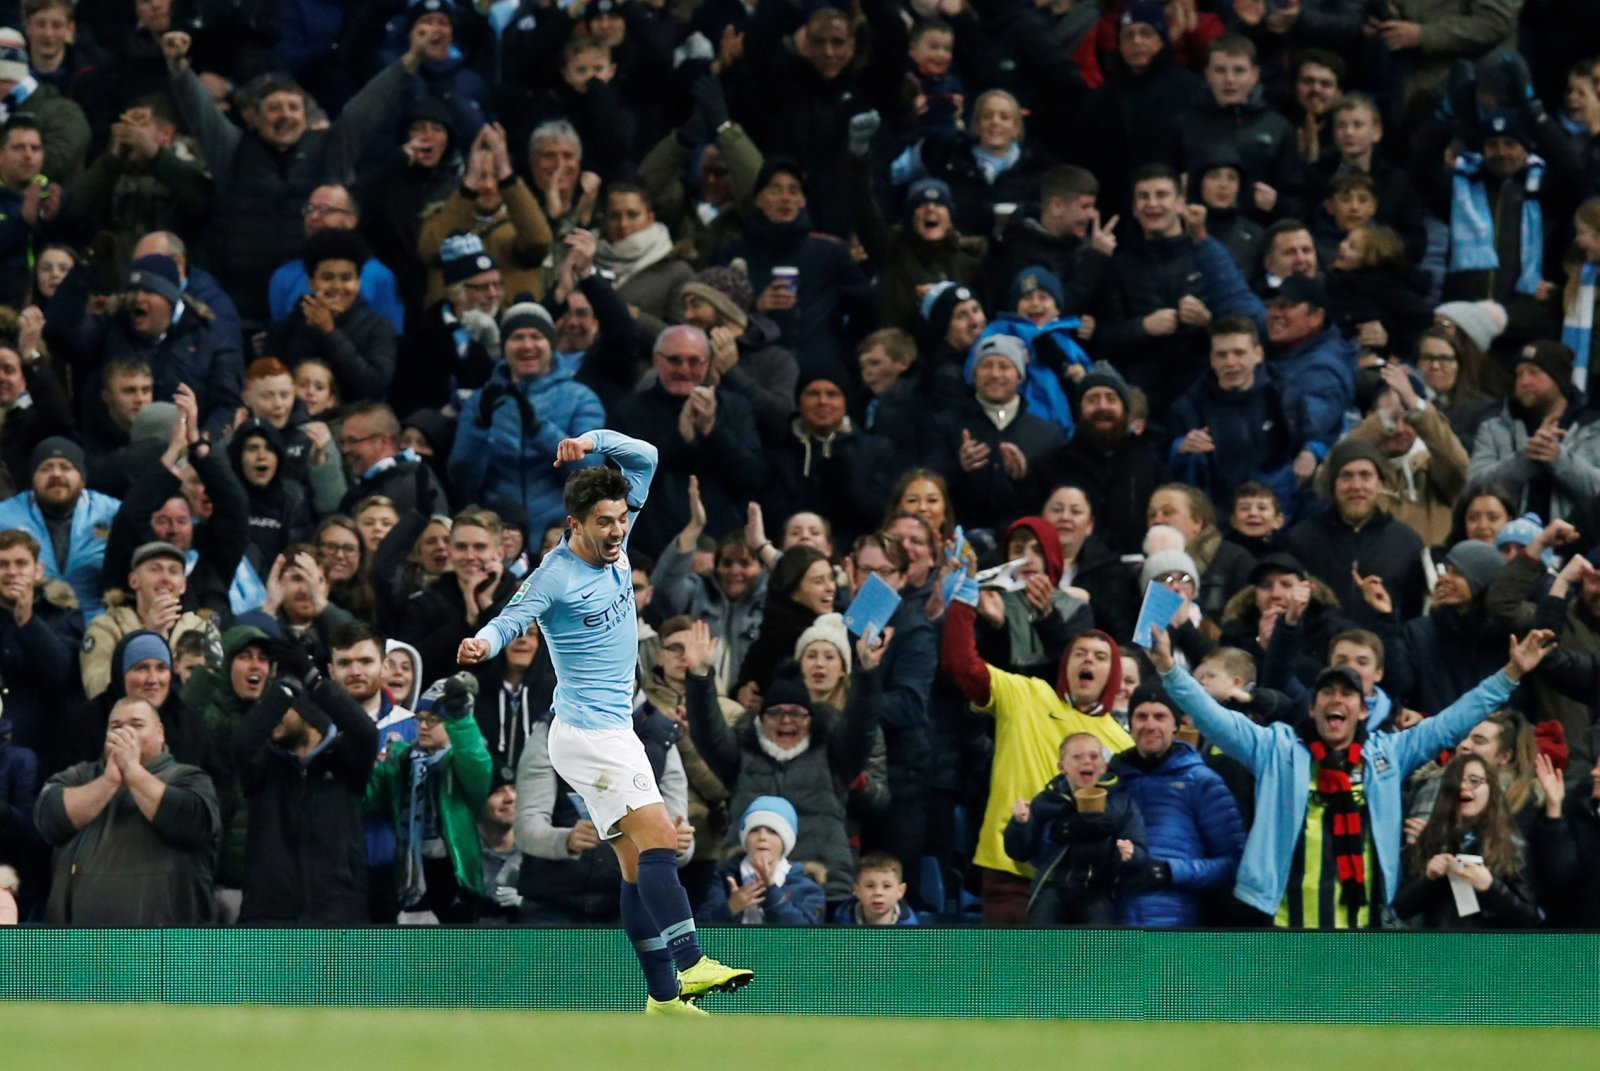 Liverpool should be weighing up a move for Brahim Diaz